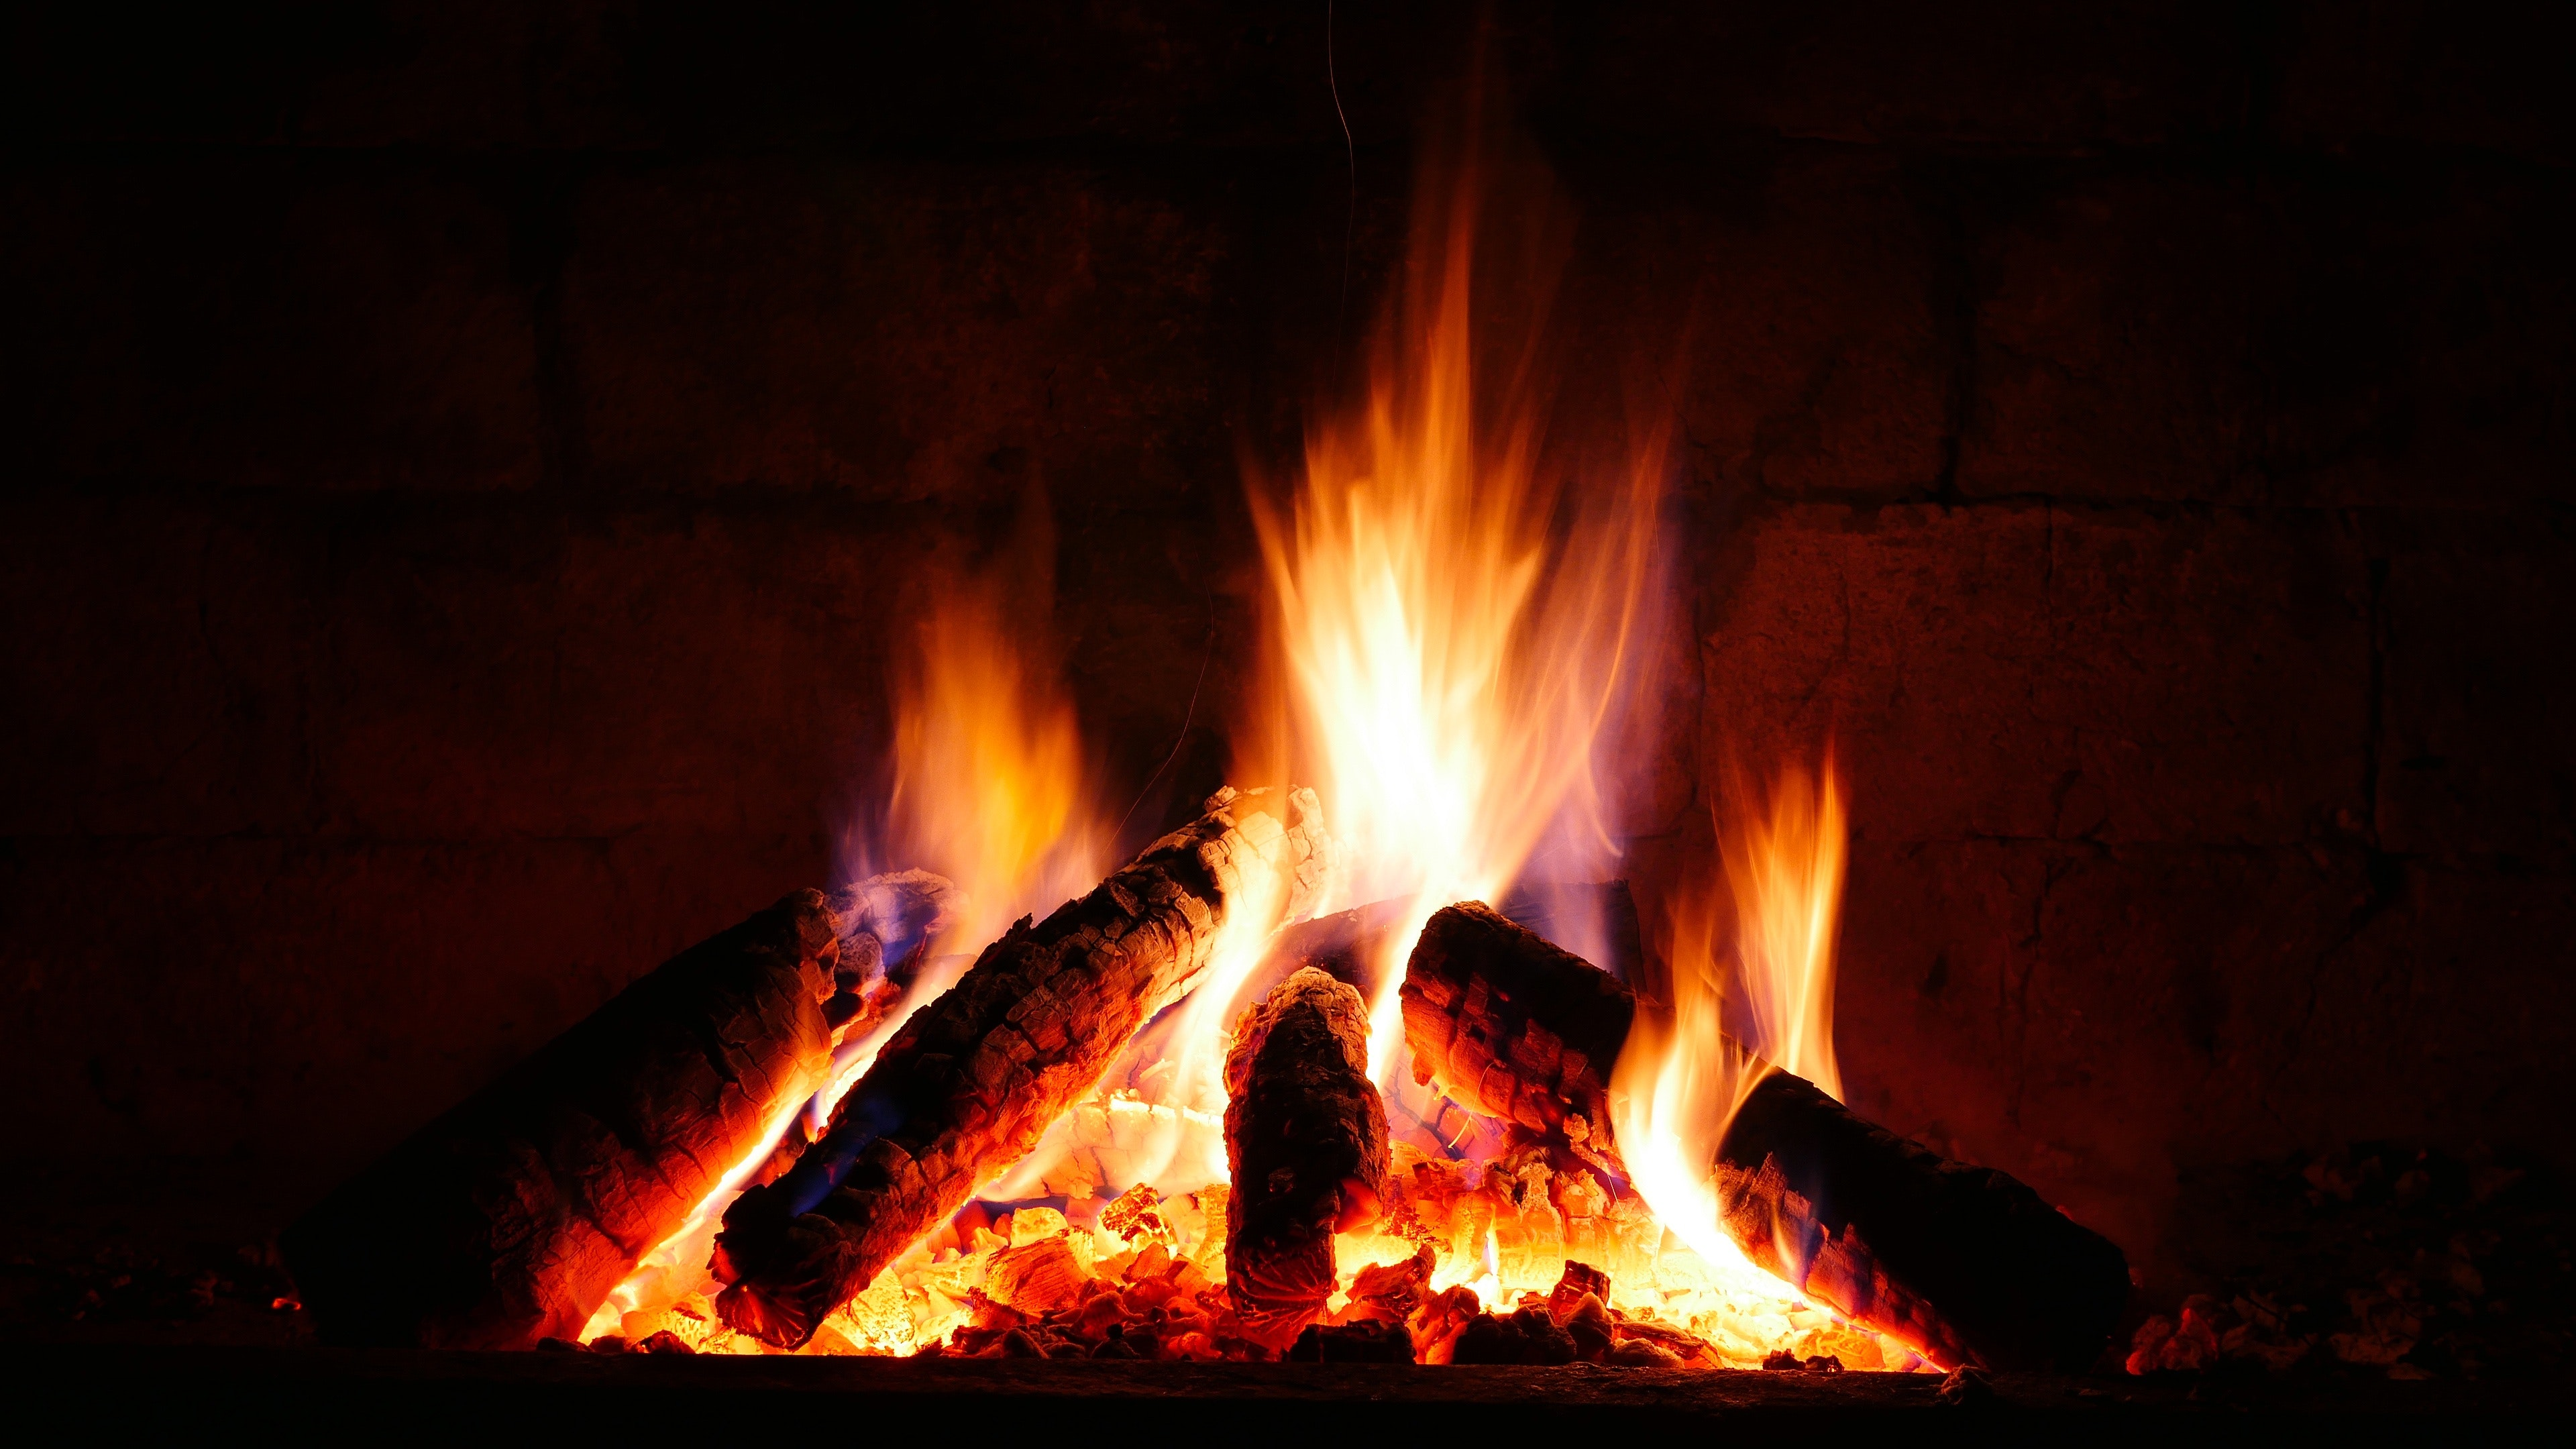 Fire Safety Facts & Tips